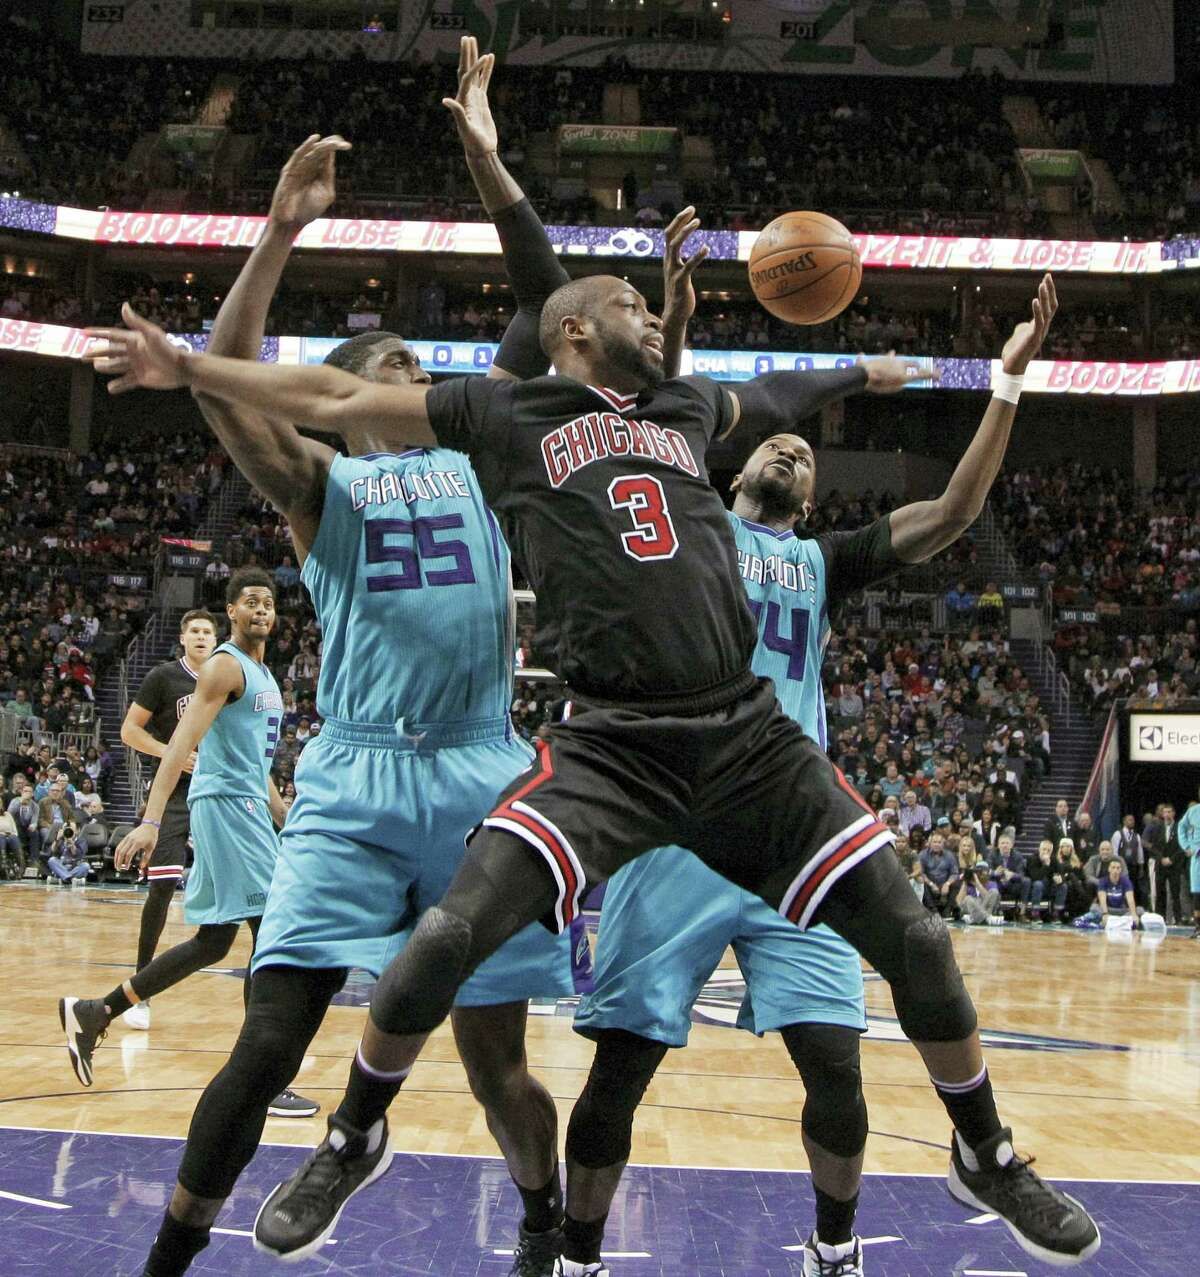 Chicago Bulls' Dwyane Wade (3) loses the ball as he drives between Charlotte Hornets' Roy Hibbert (55) and Michael Kidd-Gilchrist (14) in the second half of an NBA basketball game in Charlotte, N.C., on Dec. 23, 2016. The Hornets won 103-91.